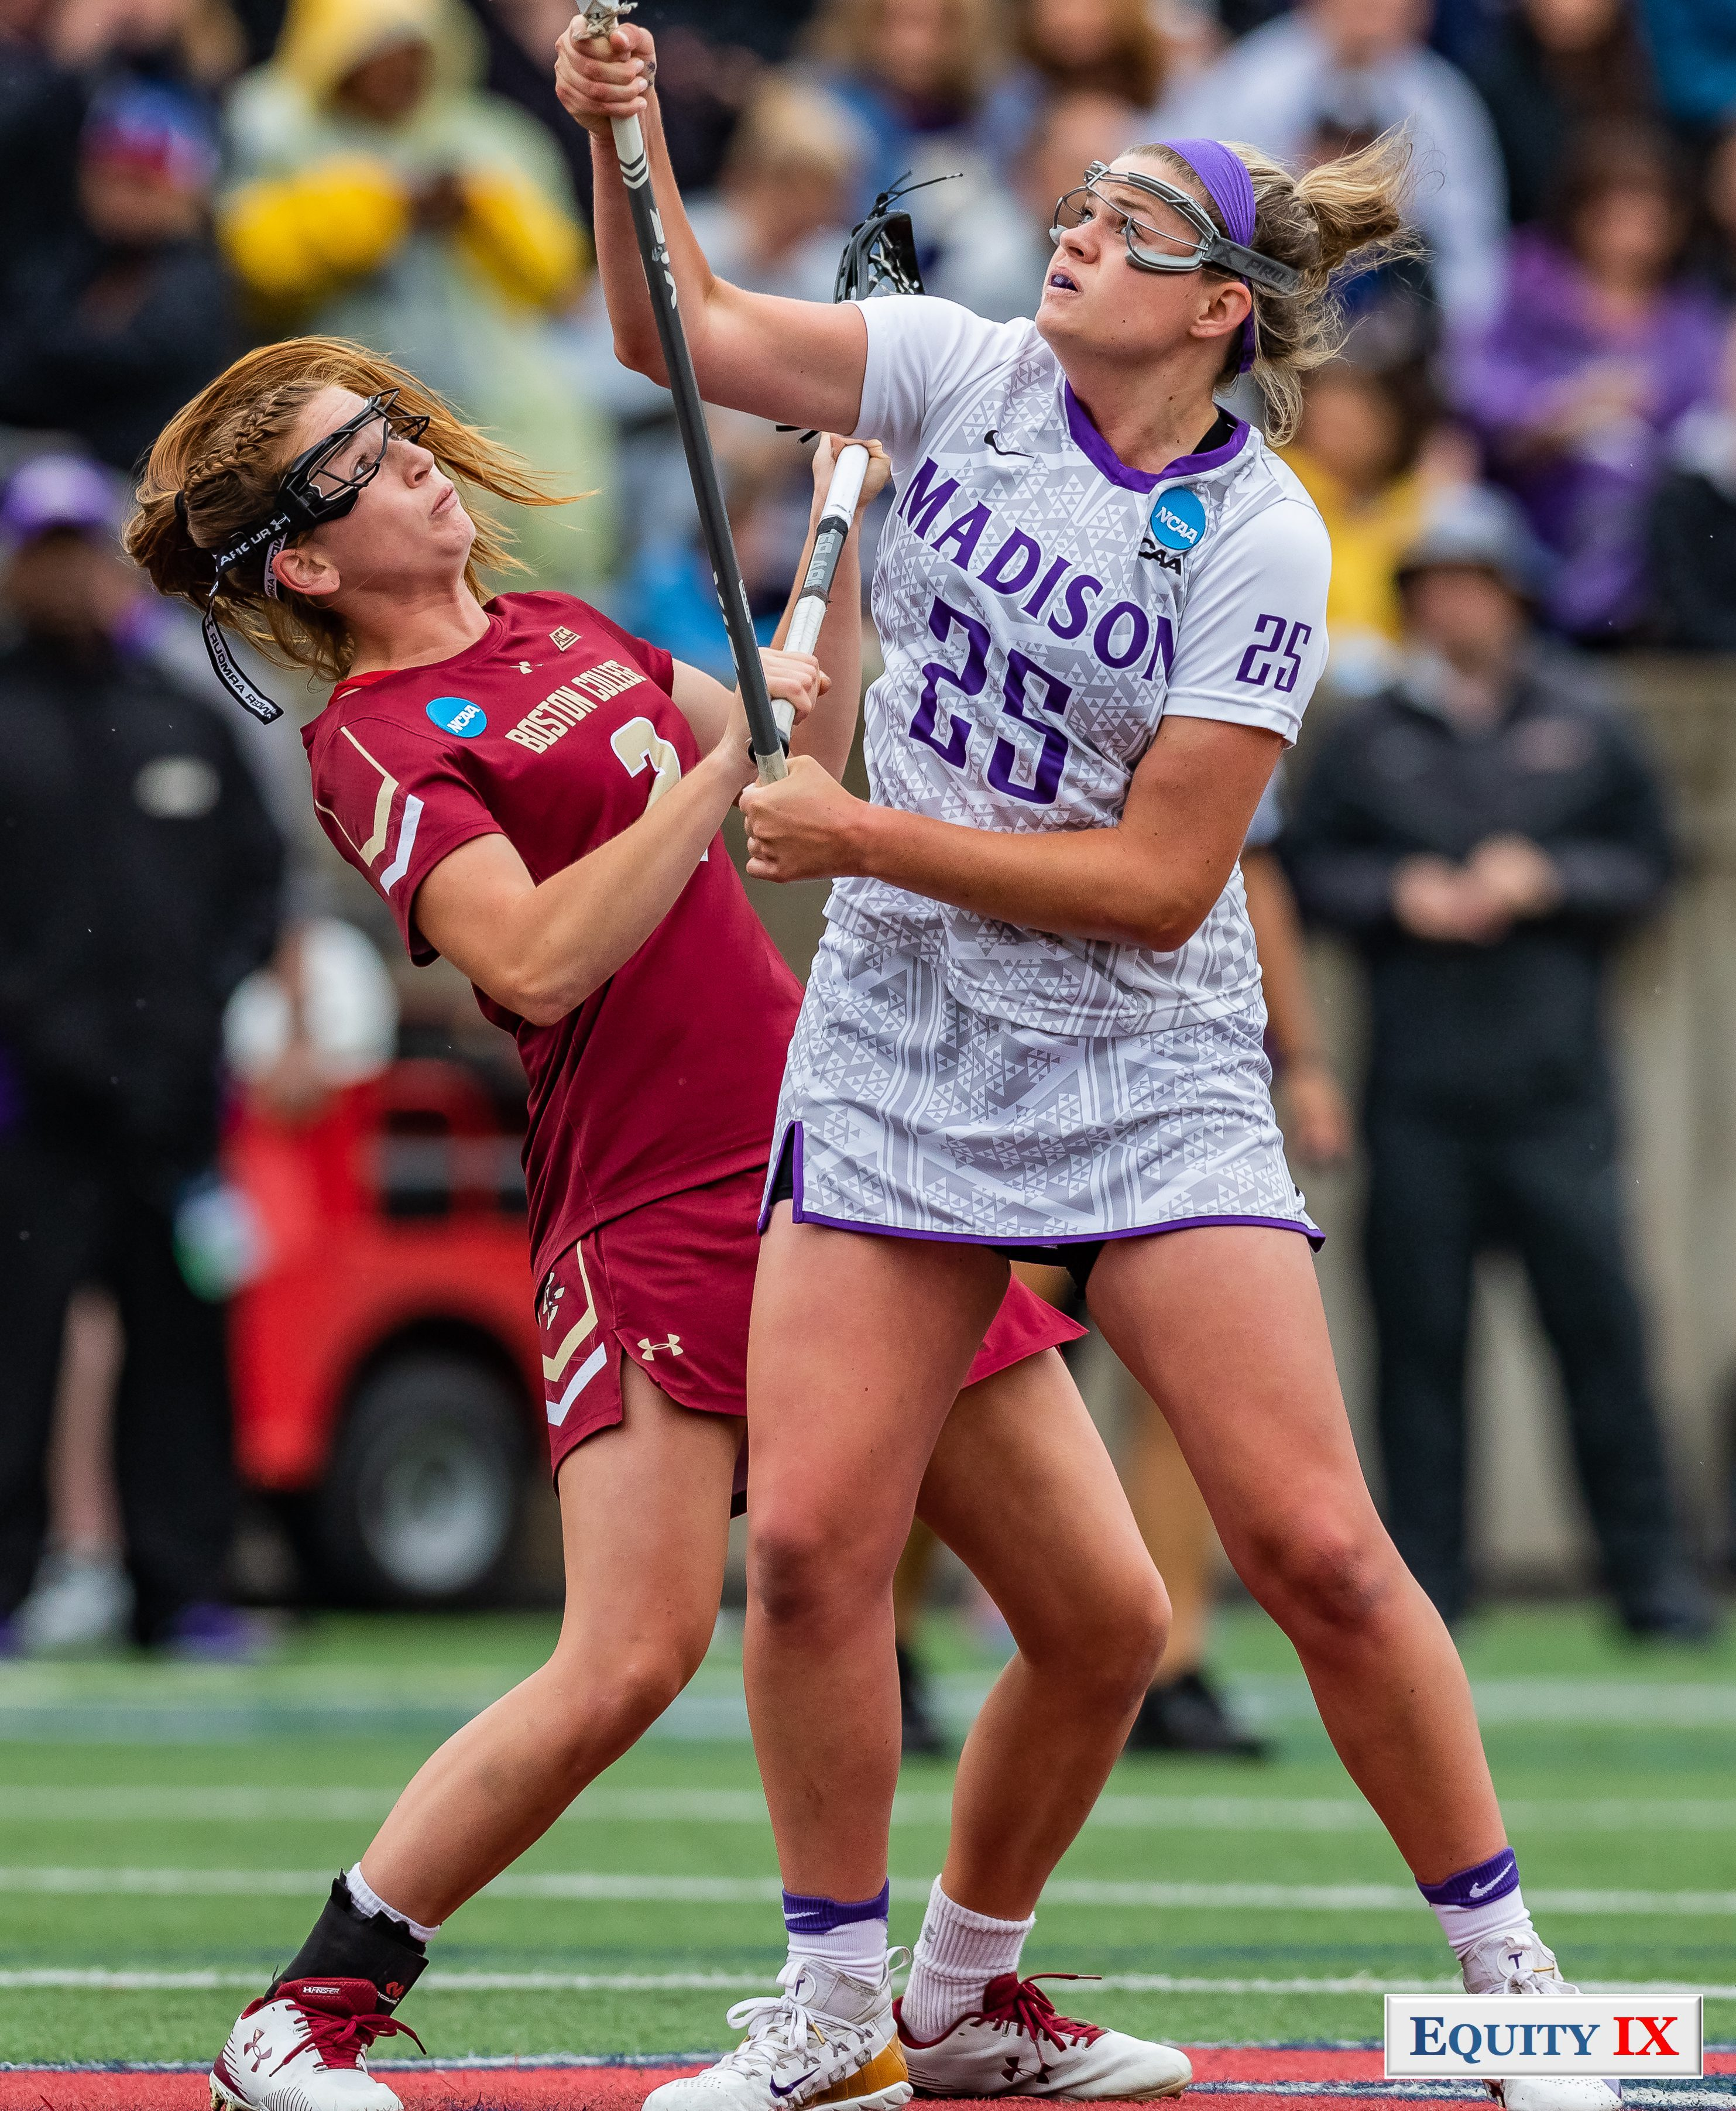 Haley Warden (JMU #25) with purple bandana and goggles draws against Sam Apuzzo (Boston College #2) leaning backwards both are looking up into the air for the ball with their lacrosse sticks drawn to the side - 2018 NCAA Women's Lacrosse Championship Game - Tewaaraton Award © Equity IX - SportsOgram - Leigh Ernst Friestedt